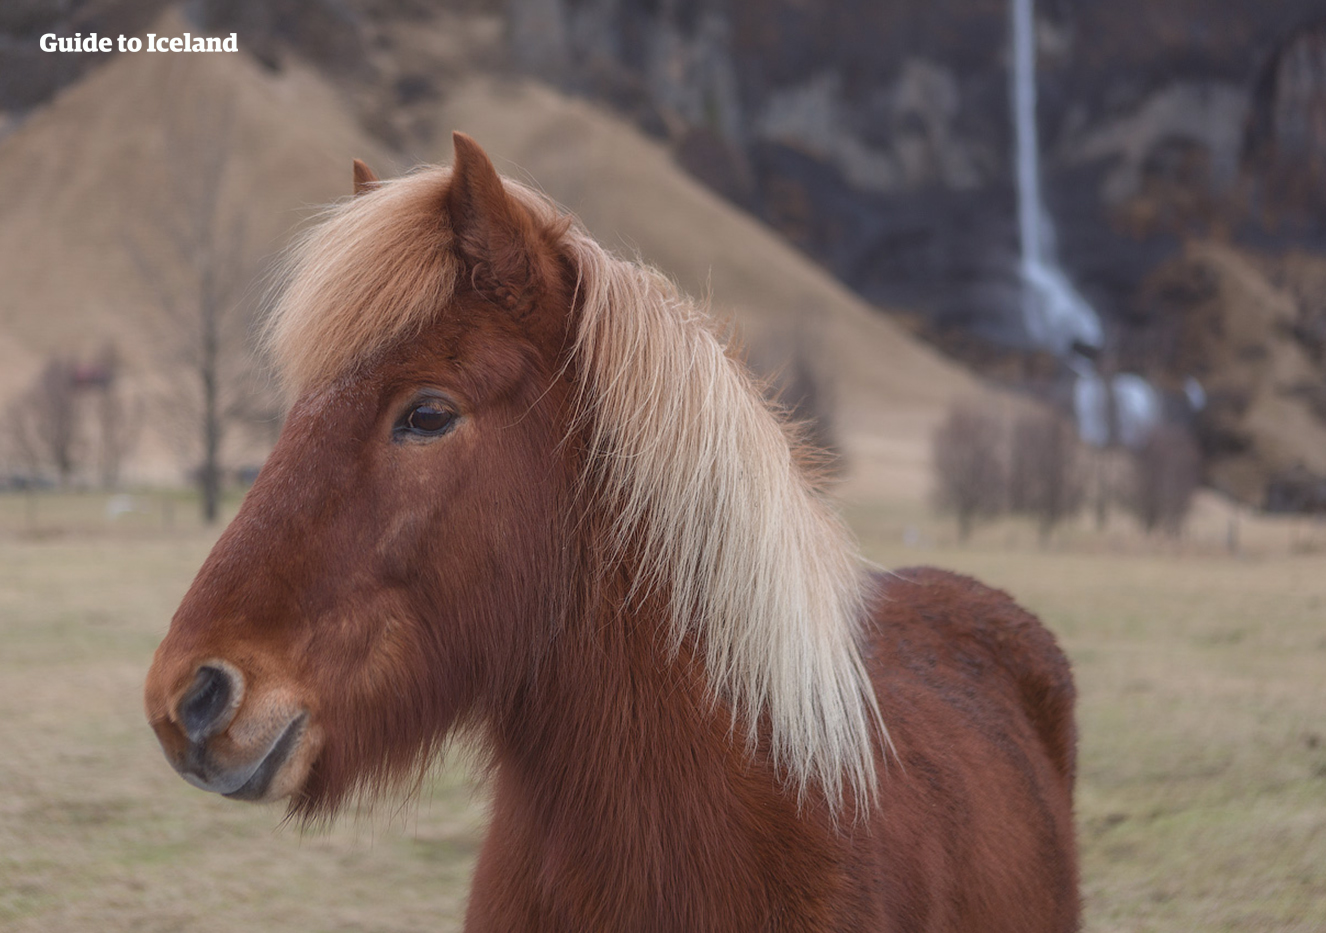 A red horse with a blonde mane standing in front of a waterfall in Iceland.